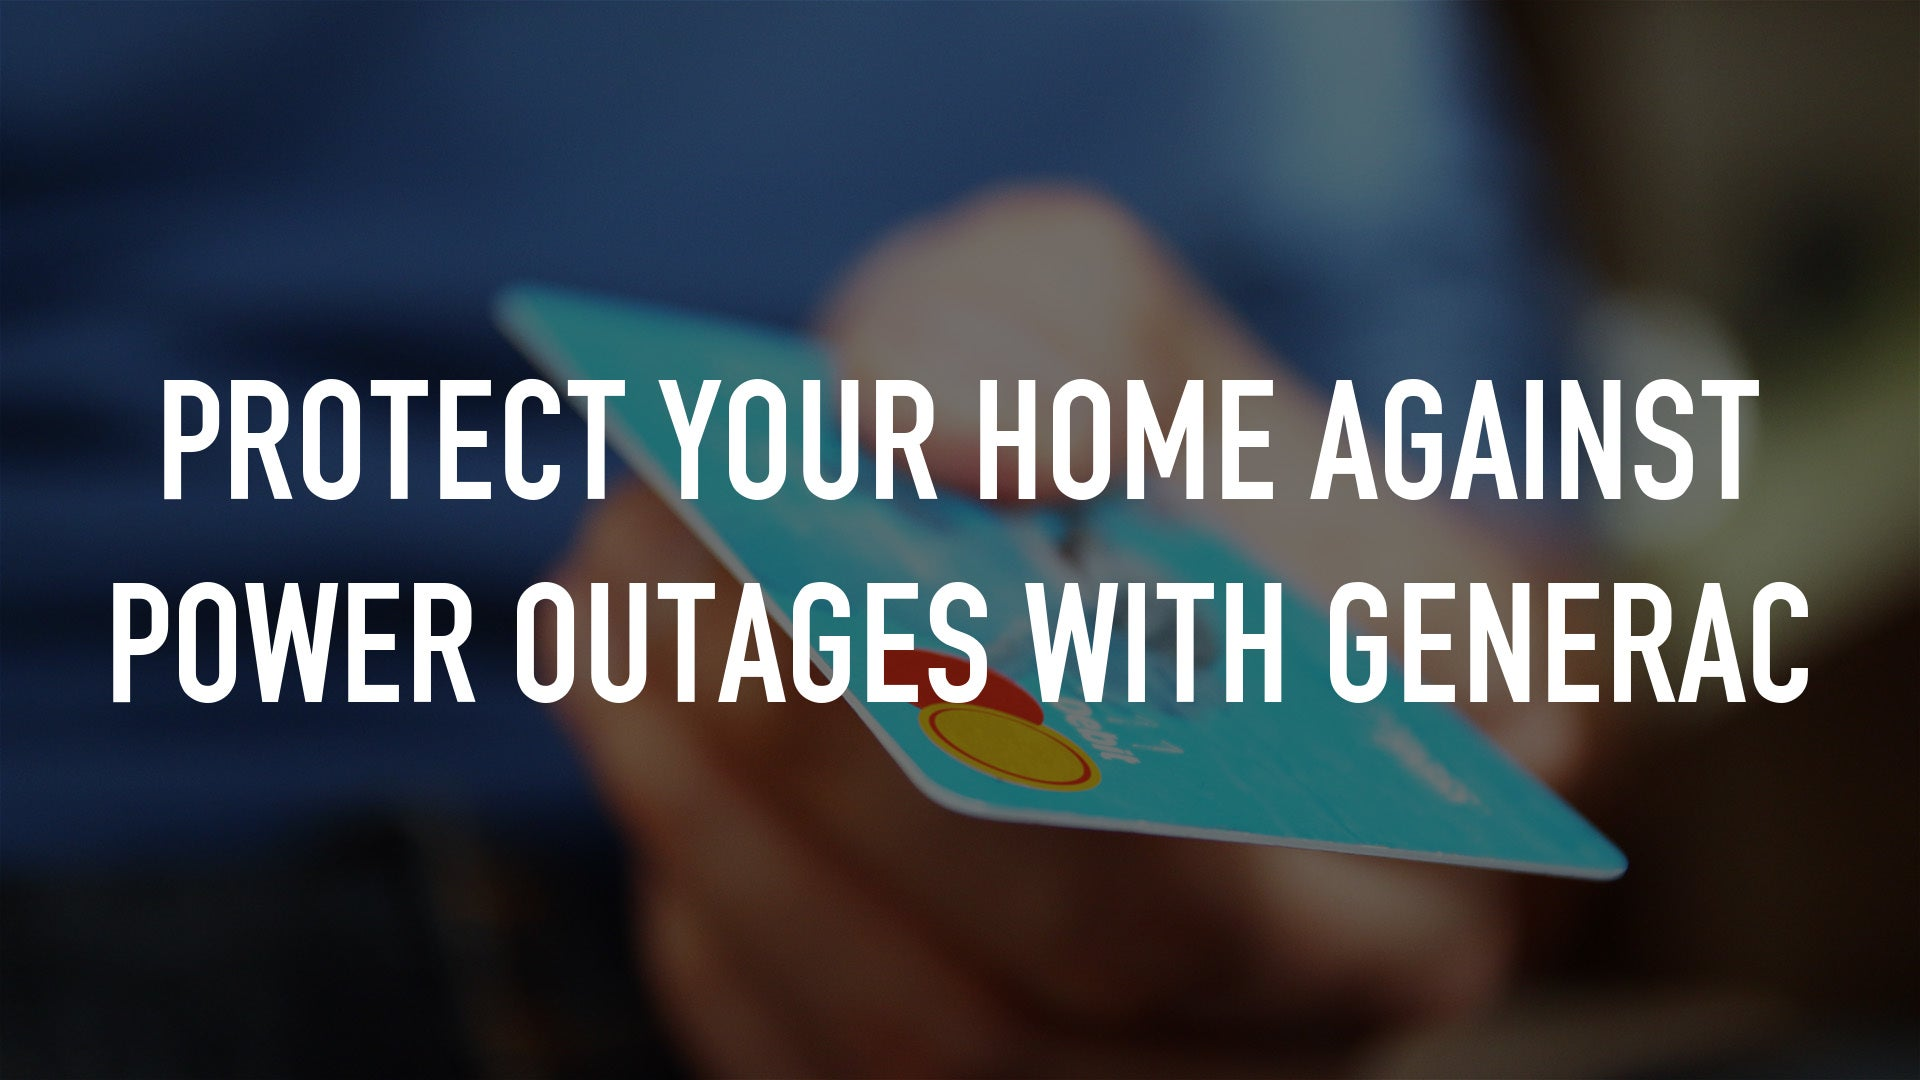 Protect your home against power outages with Generac